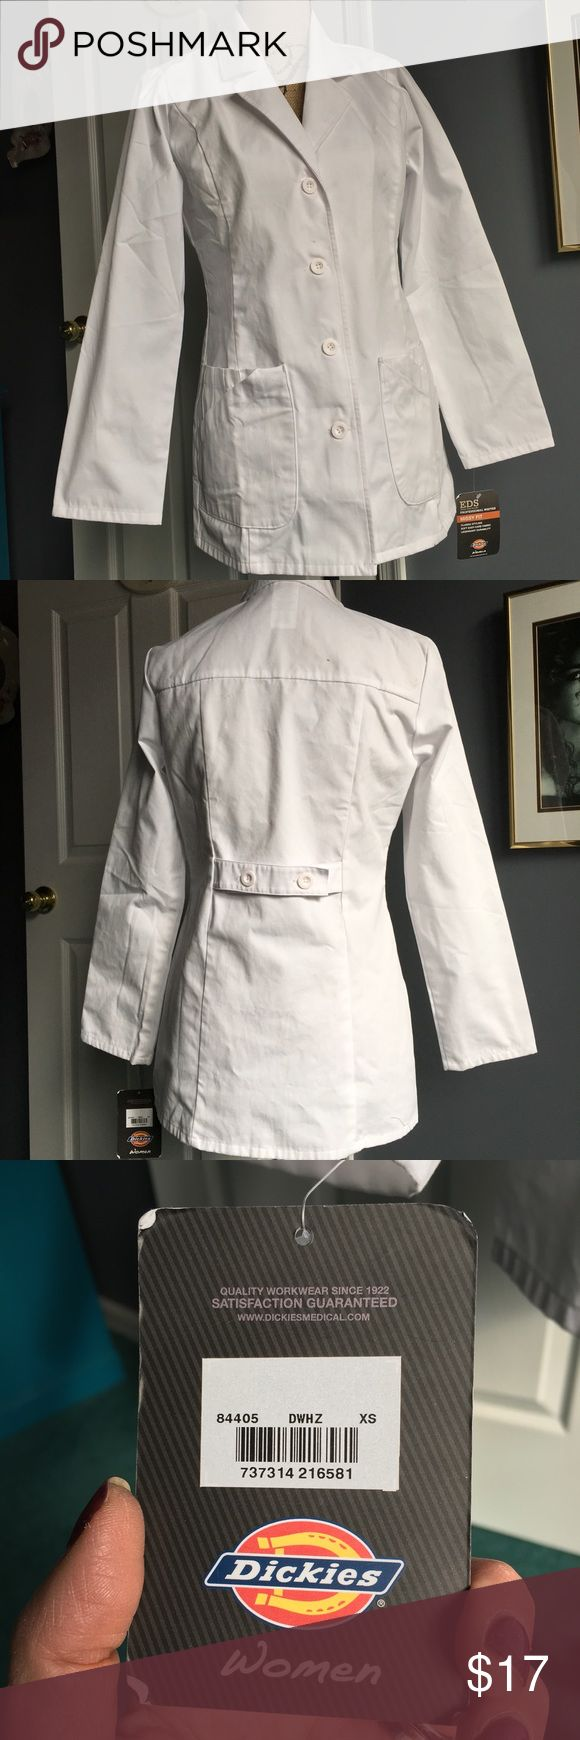 "Dickies Women's EDS 29"" White Lab Coat Style 84405 Dickies Women's White EDS 29"" Lab Coat Style 84405. New with tags. Never worn. Has some small stains as shown in pic 4. Size XS. Dickies Jackets & Coats Blazers"